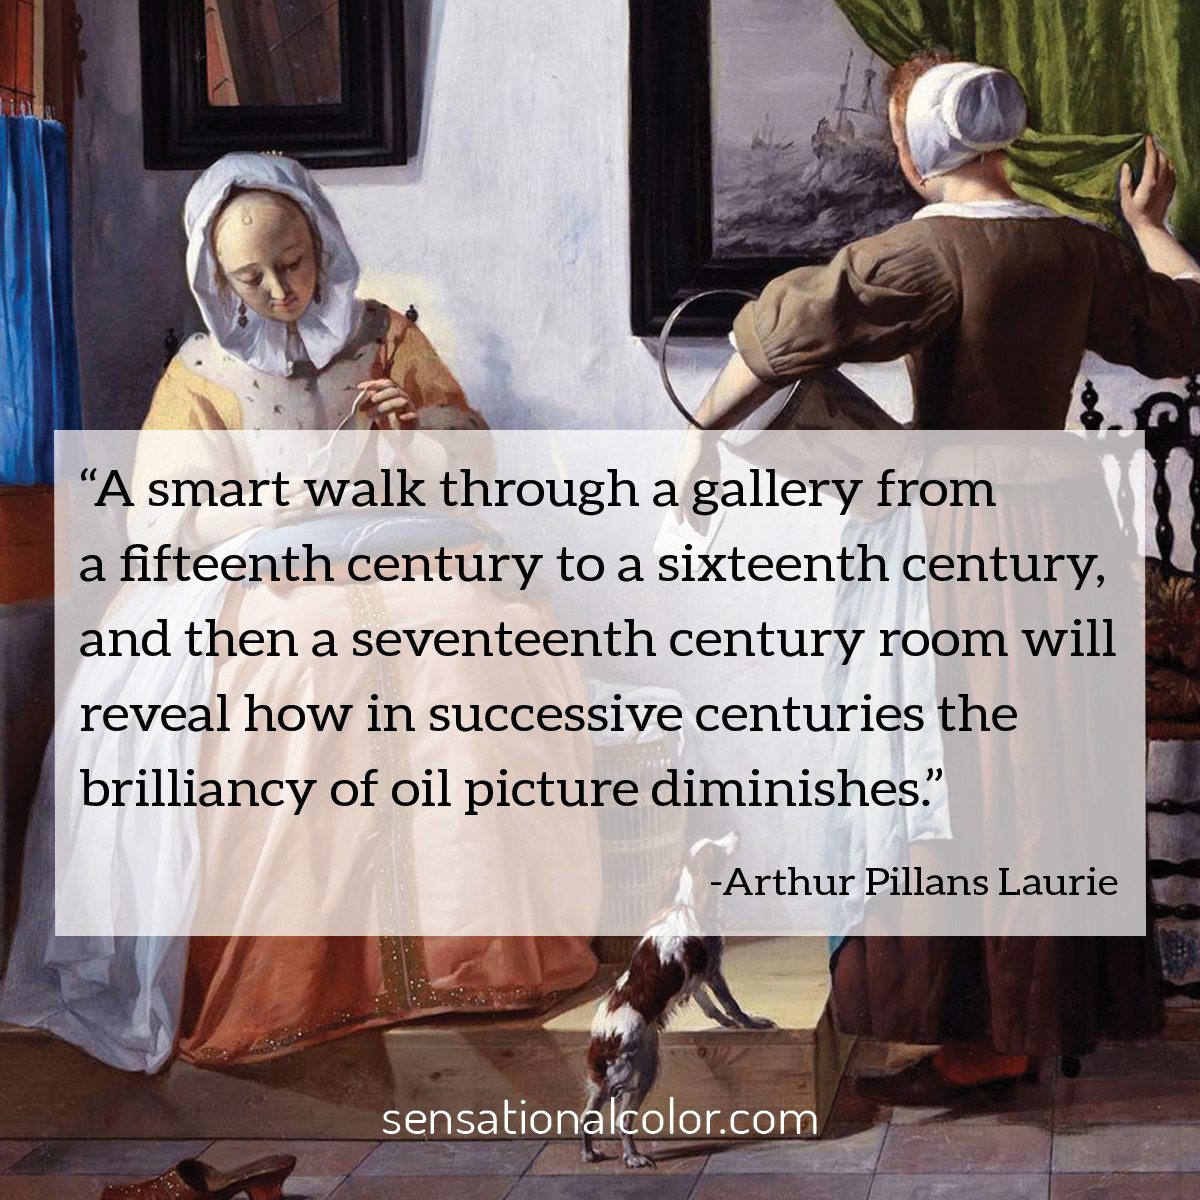 """A smart walk through a gallery from a fifteenth century to a sixteenth century, and then a seventeenth century room will reveal how in successive centuries the brilliancy of oil picture diminishes."" - Arthur Pillans Laurie"